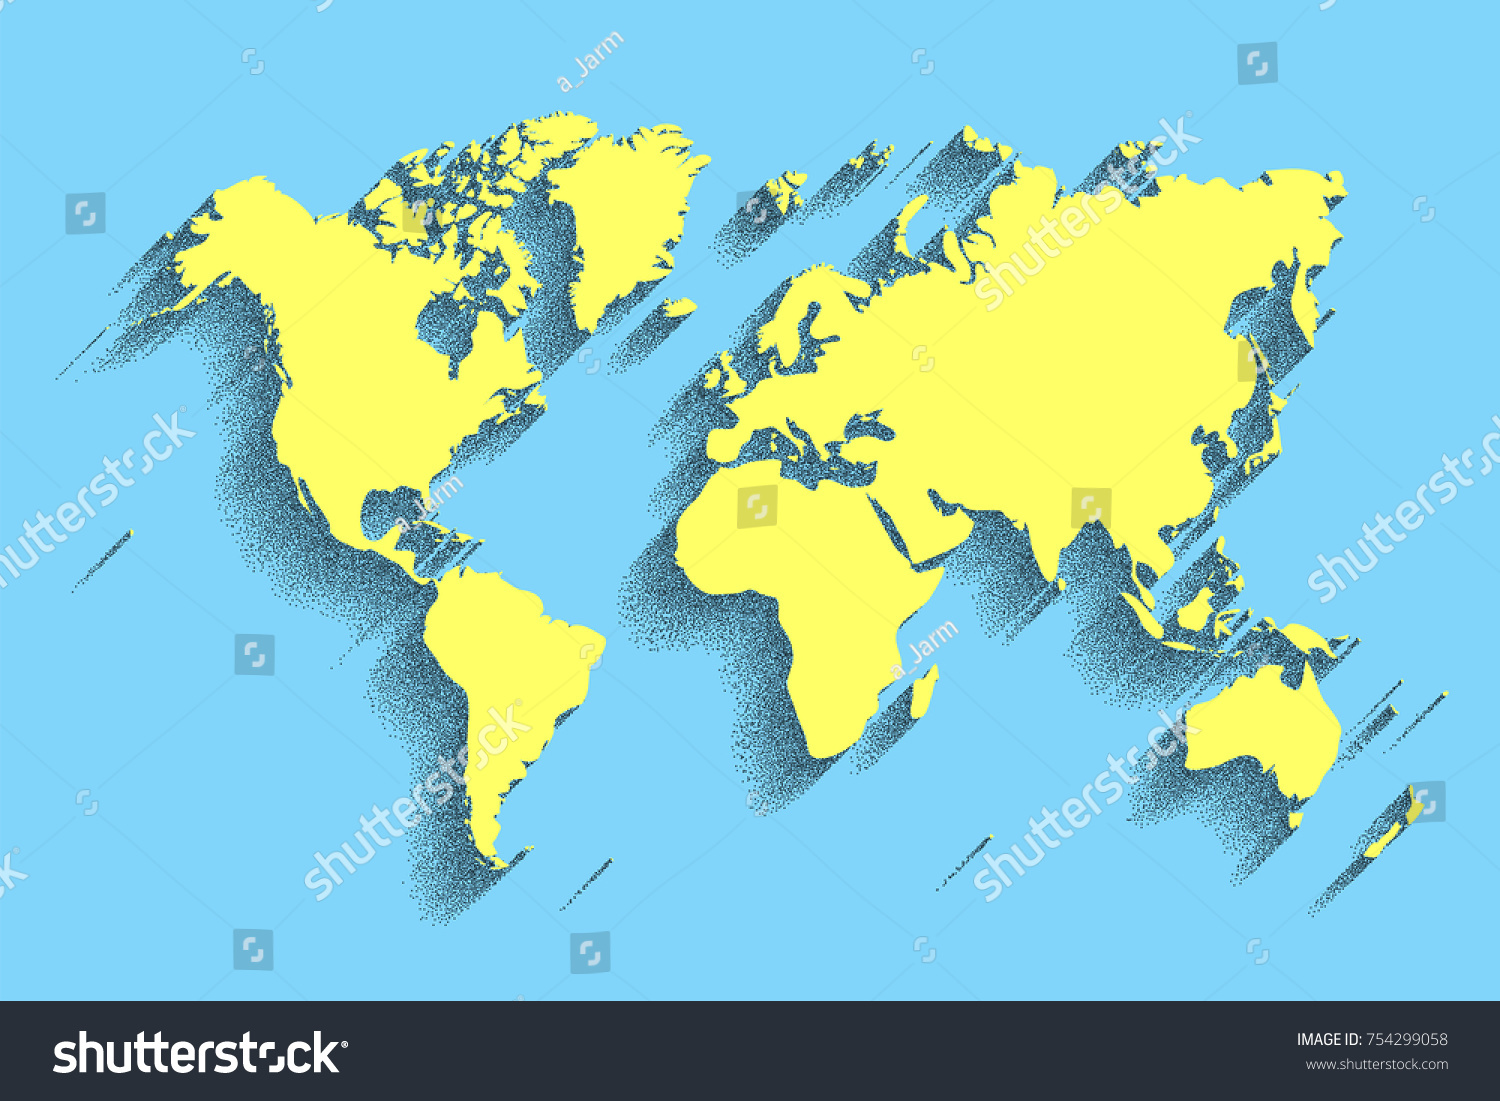 World map vector blue color background vectores en stock 754299058 world map vector blue color background with shadow gumiabroncs Images